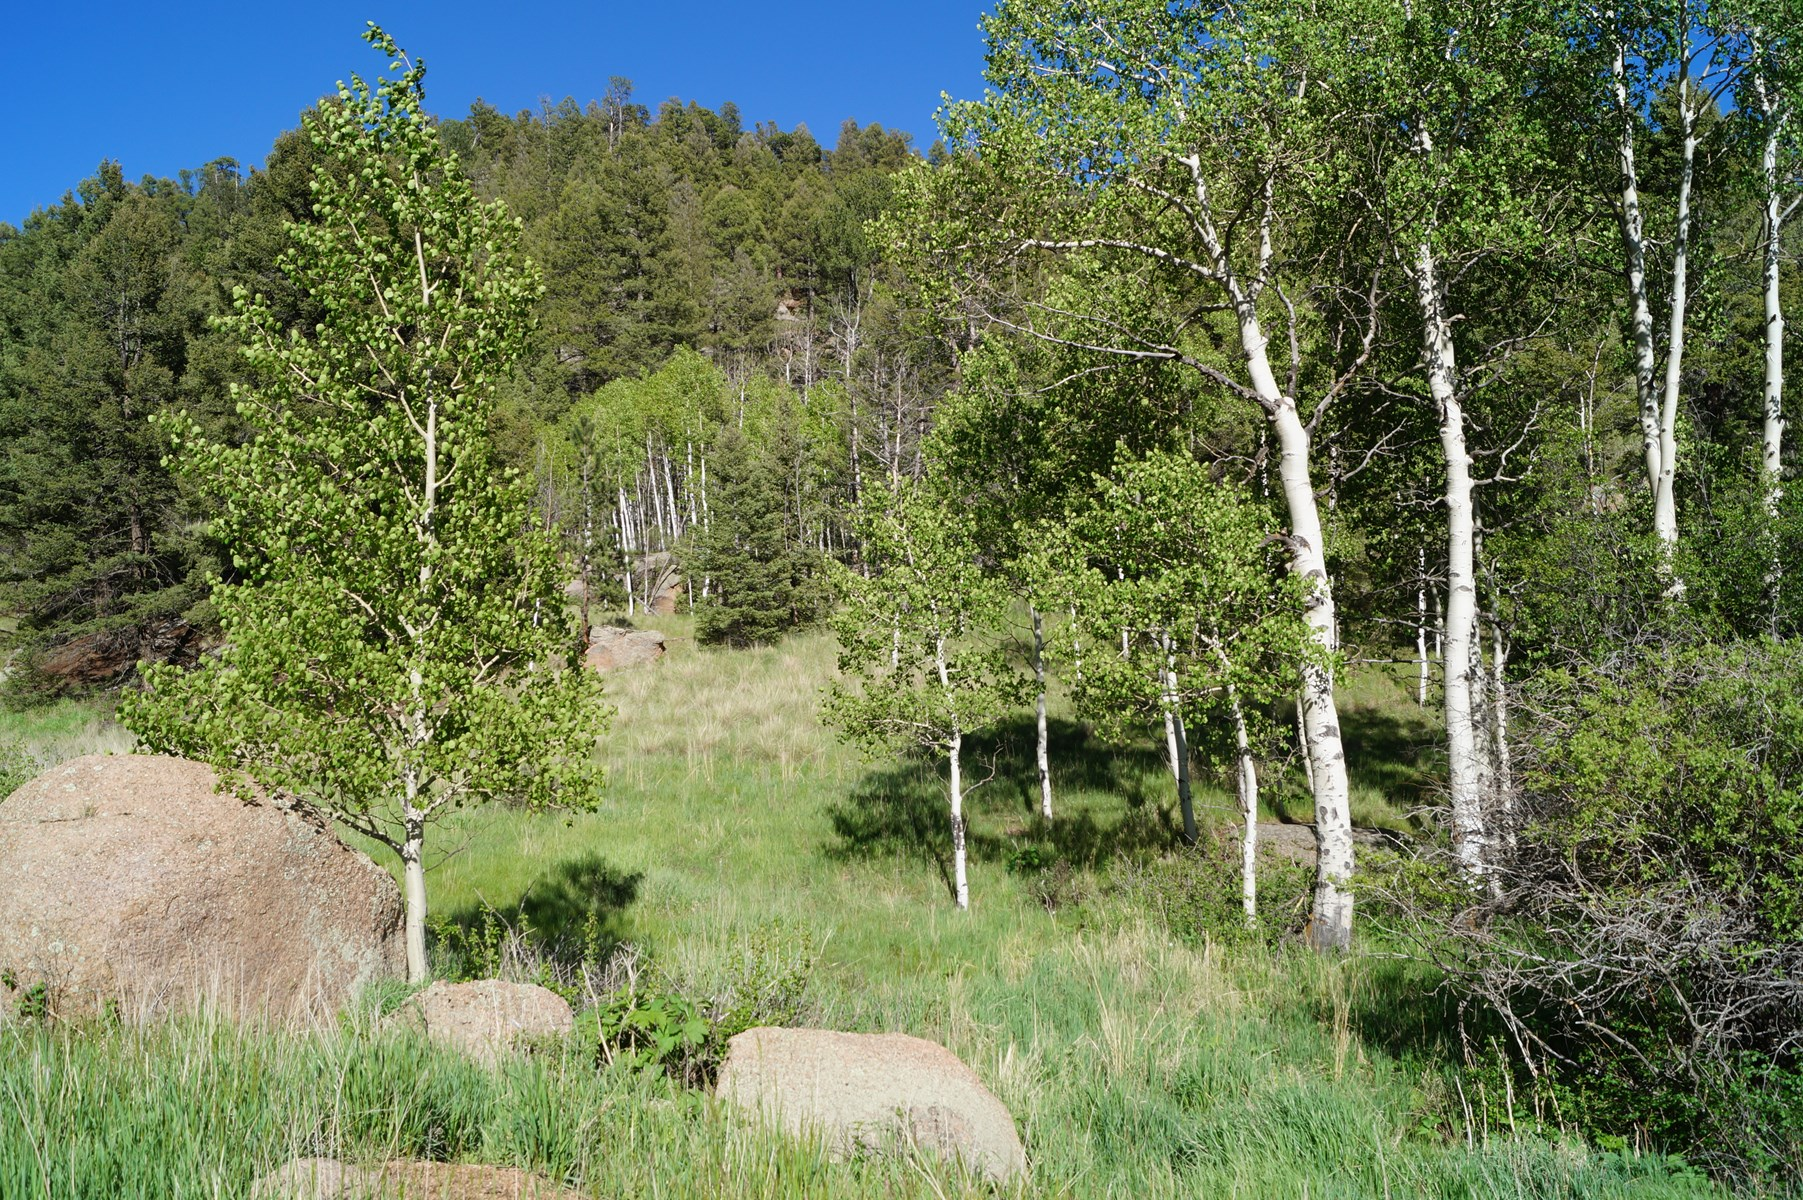 Land for Sale near Mueller State Park in Florissant, CO